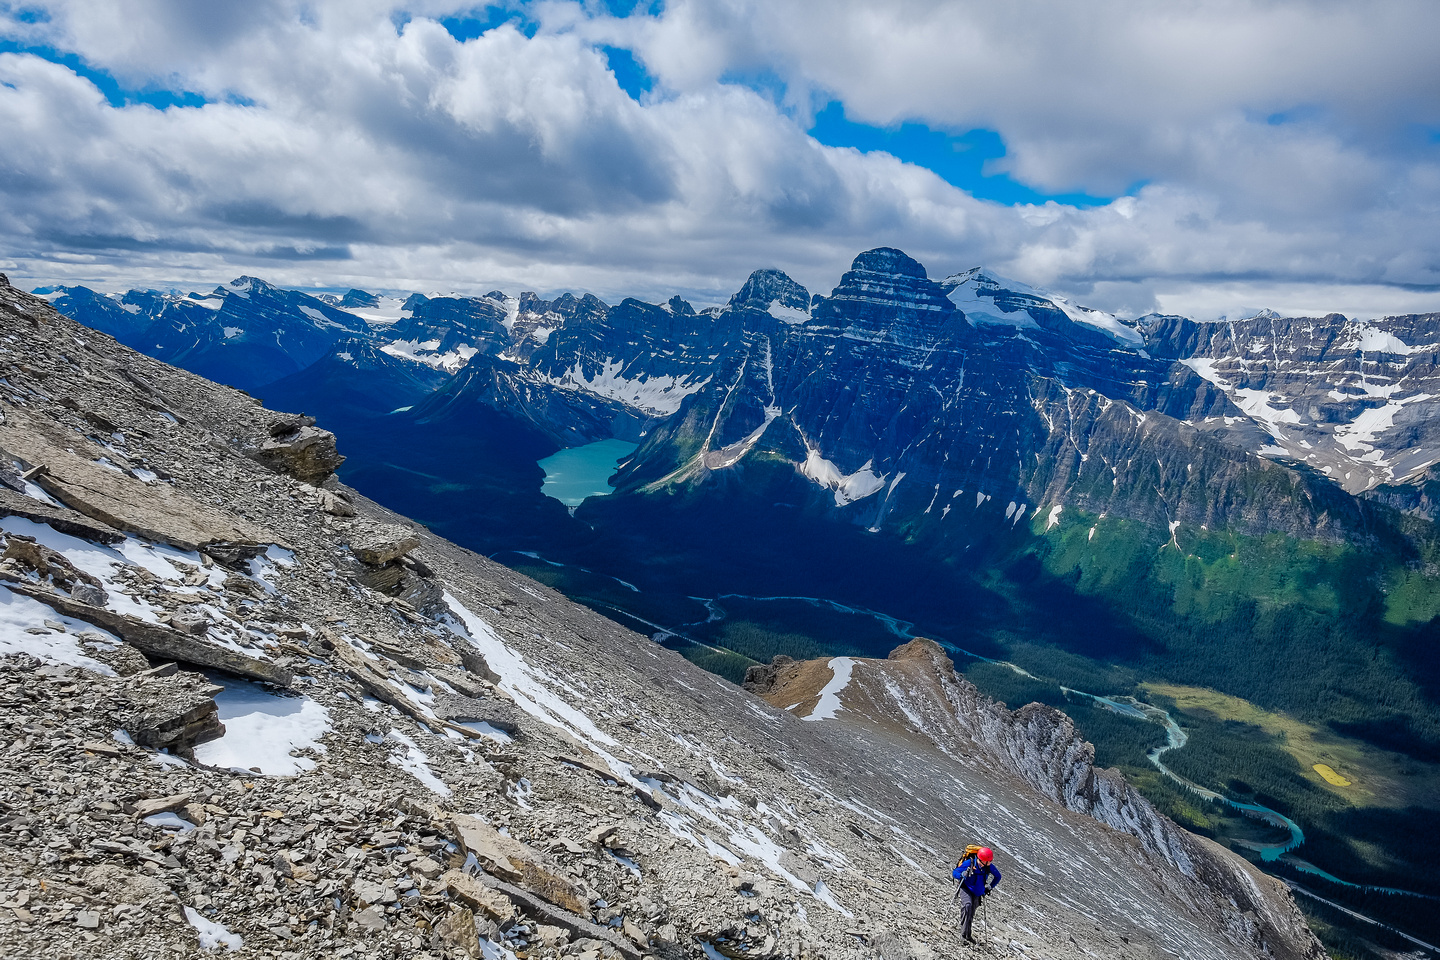 An incredible panorama of peaks and variety / color of lakes and rivers is the reward for breaking through the cliff bands guarding Bison's summit.